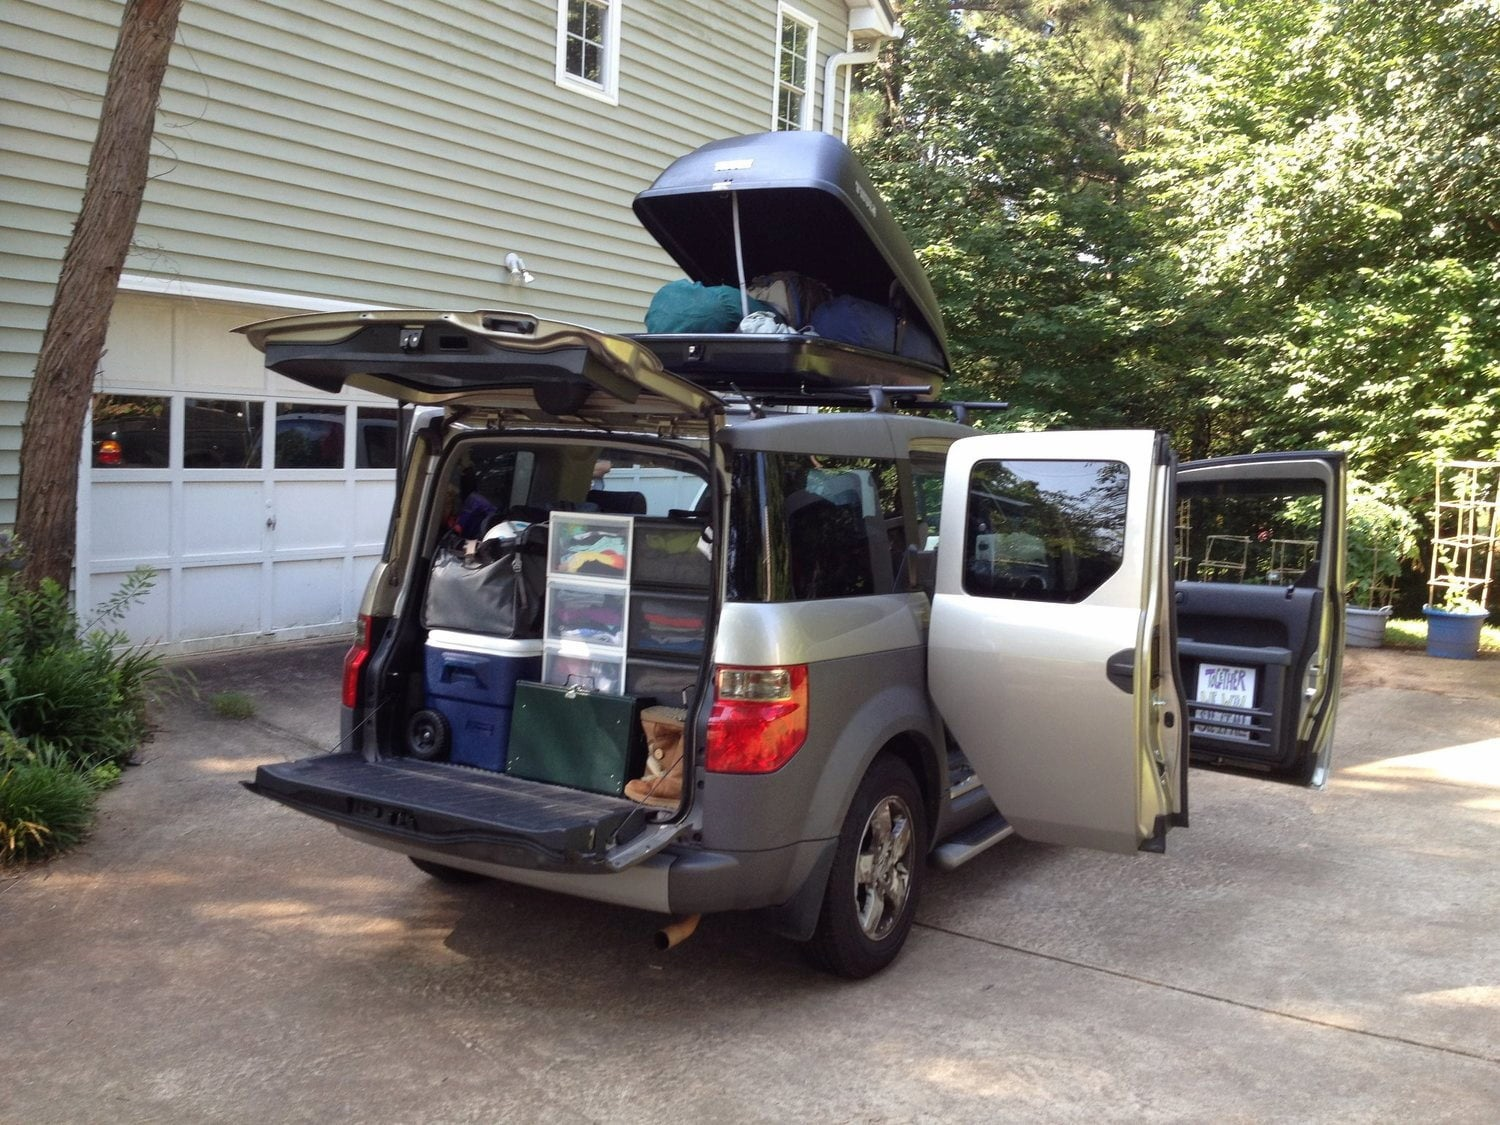 Honda Element packed to the brim with camping gear.